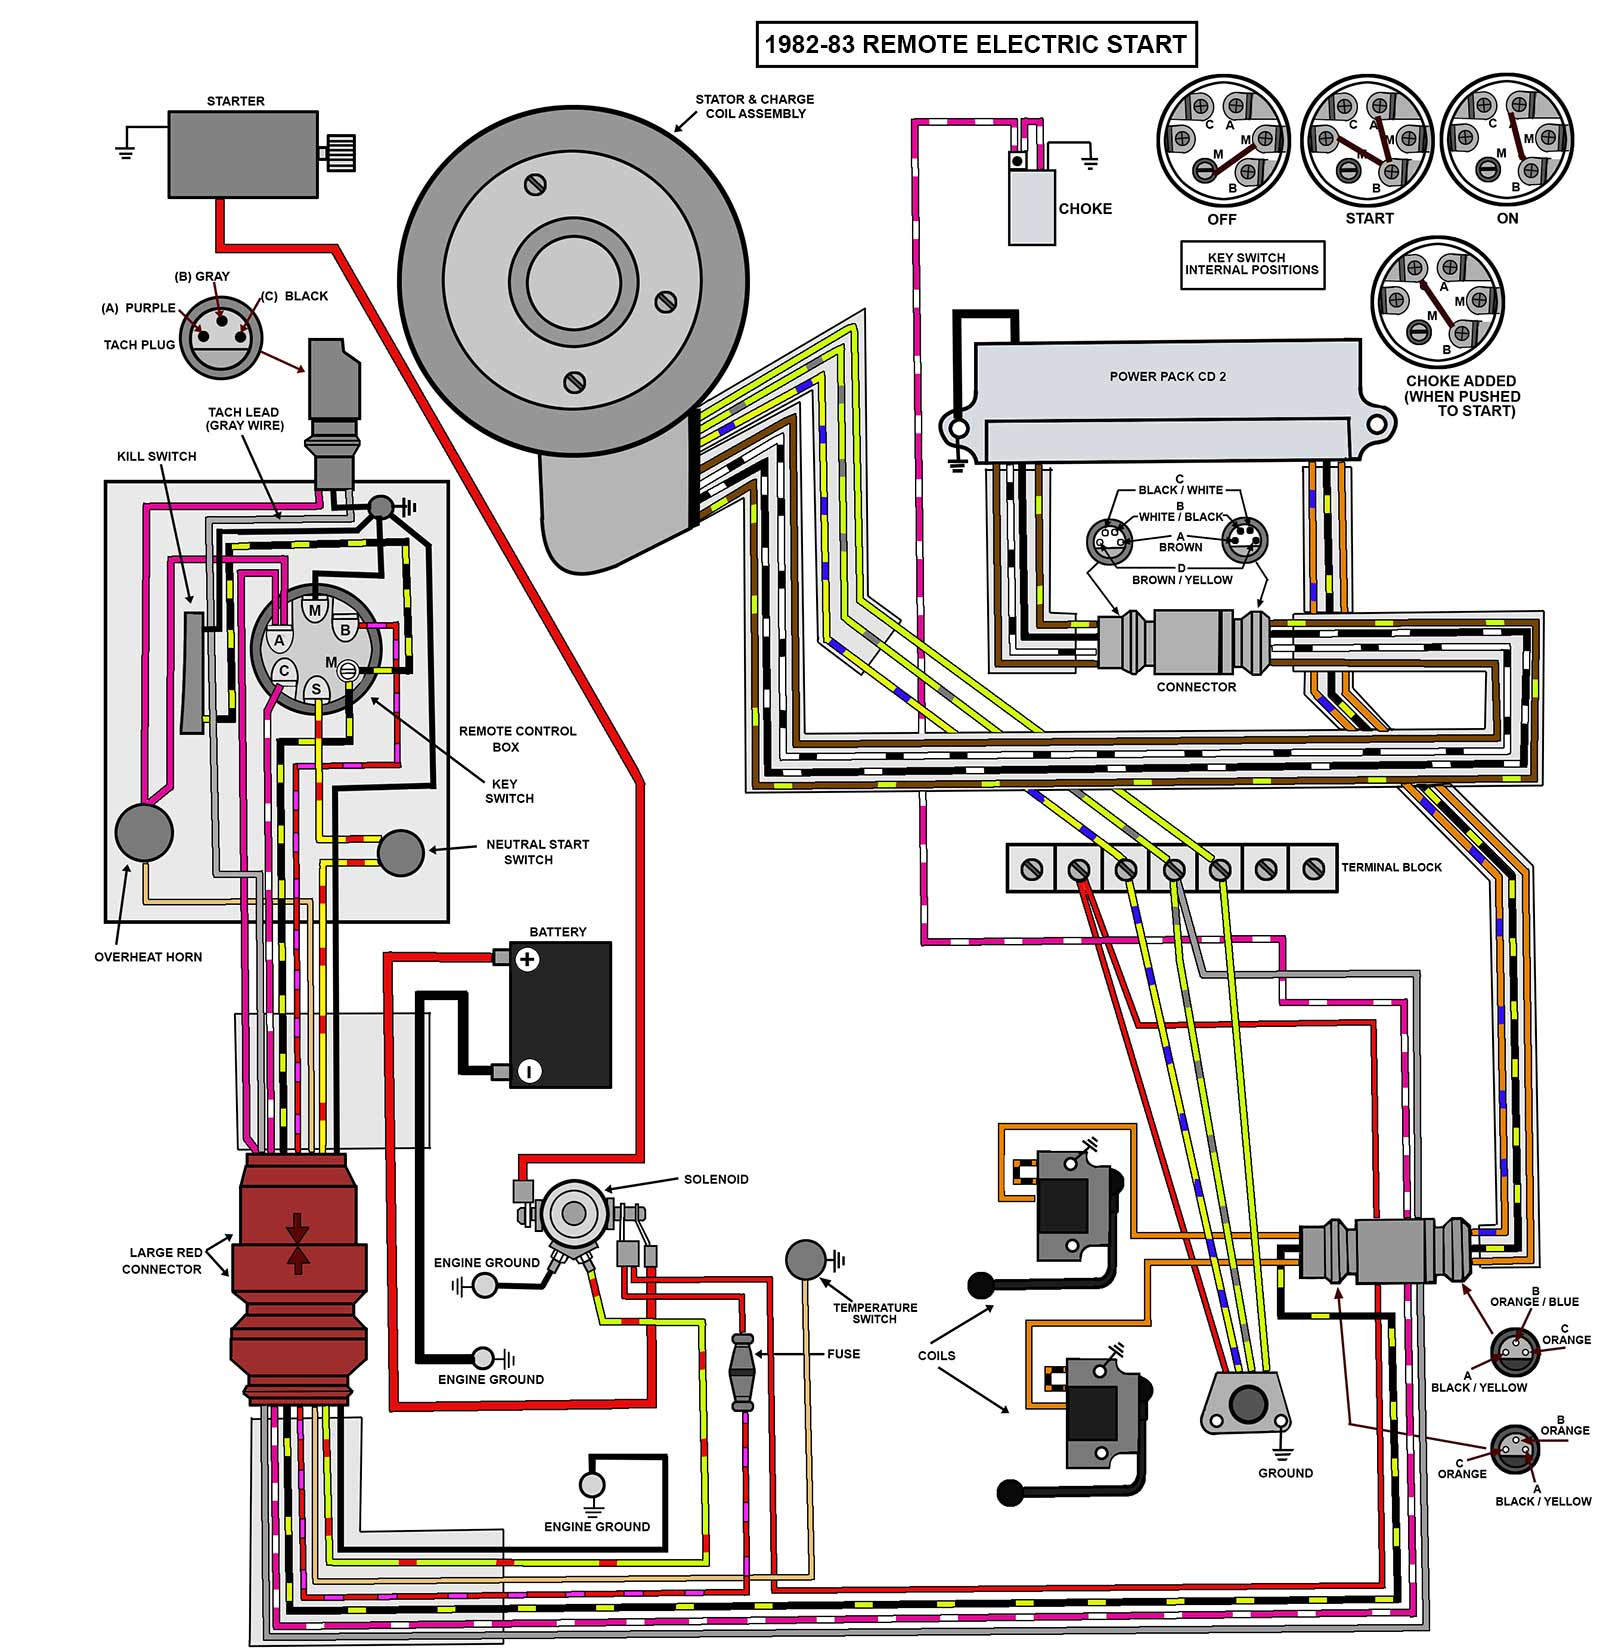 25_35_82 83_elec remote johnson wiring harness diagram on johnson download wirning diagrams johnson outboard motor wiring harness 50 hp at soozxer.org